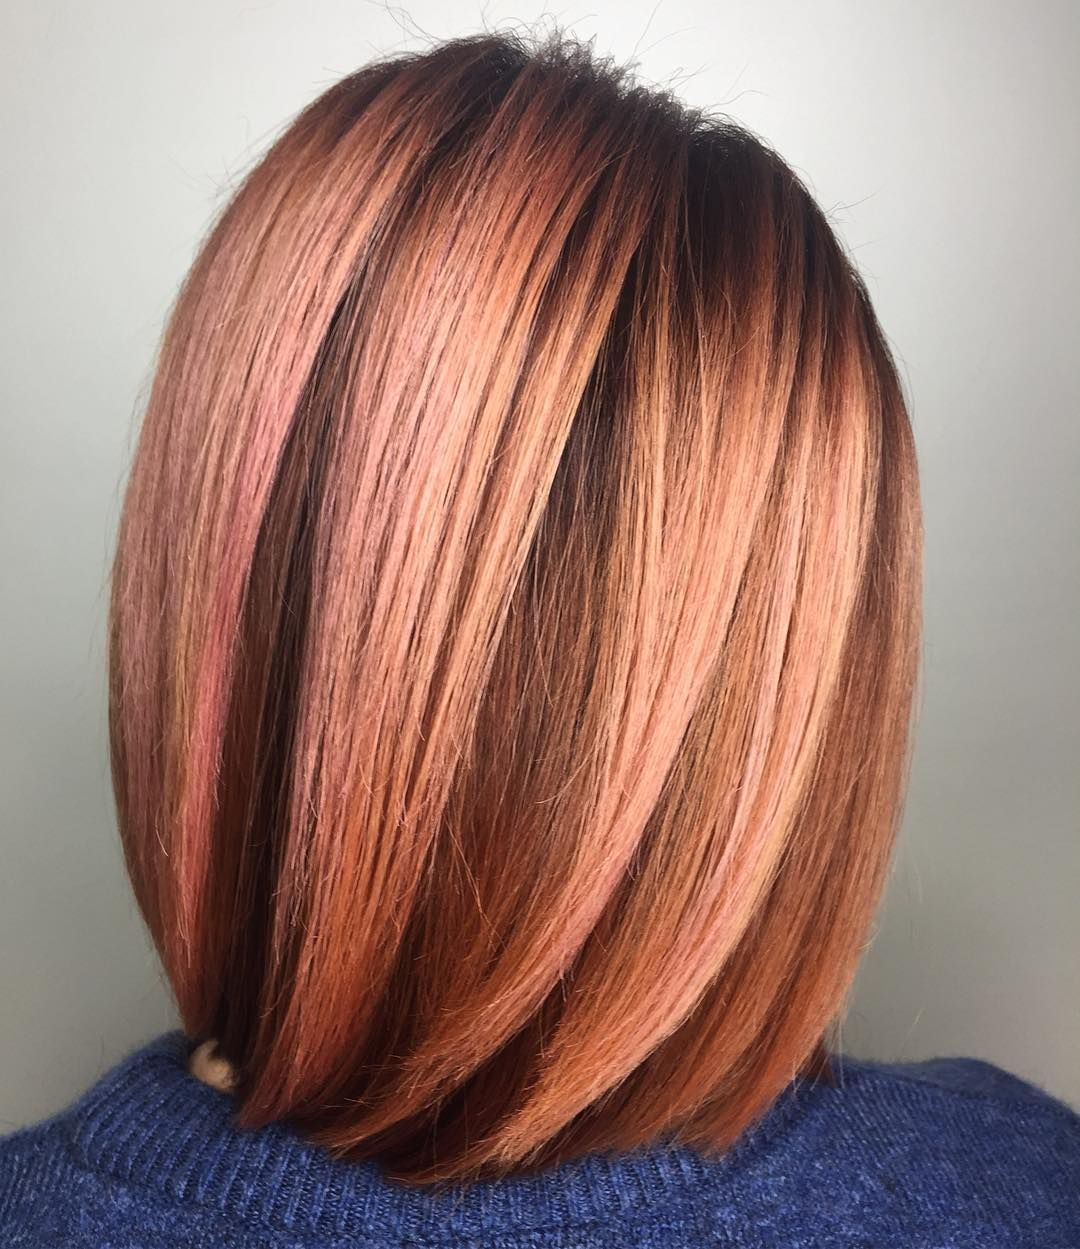 Awesome short red hair ideas looking fancy and trendy in a